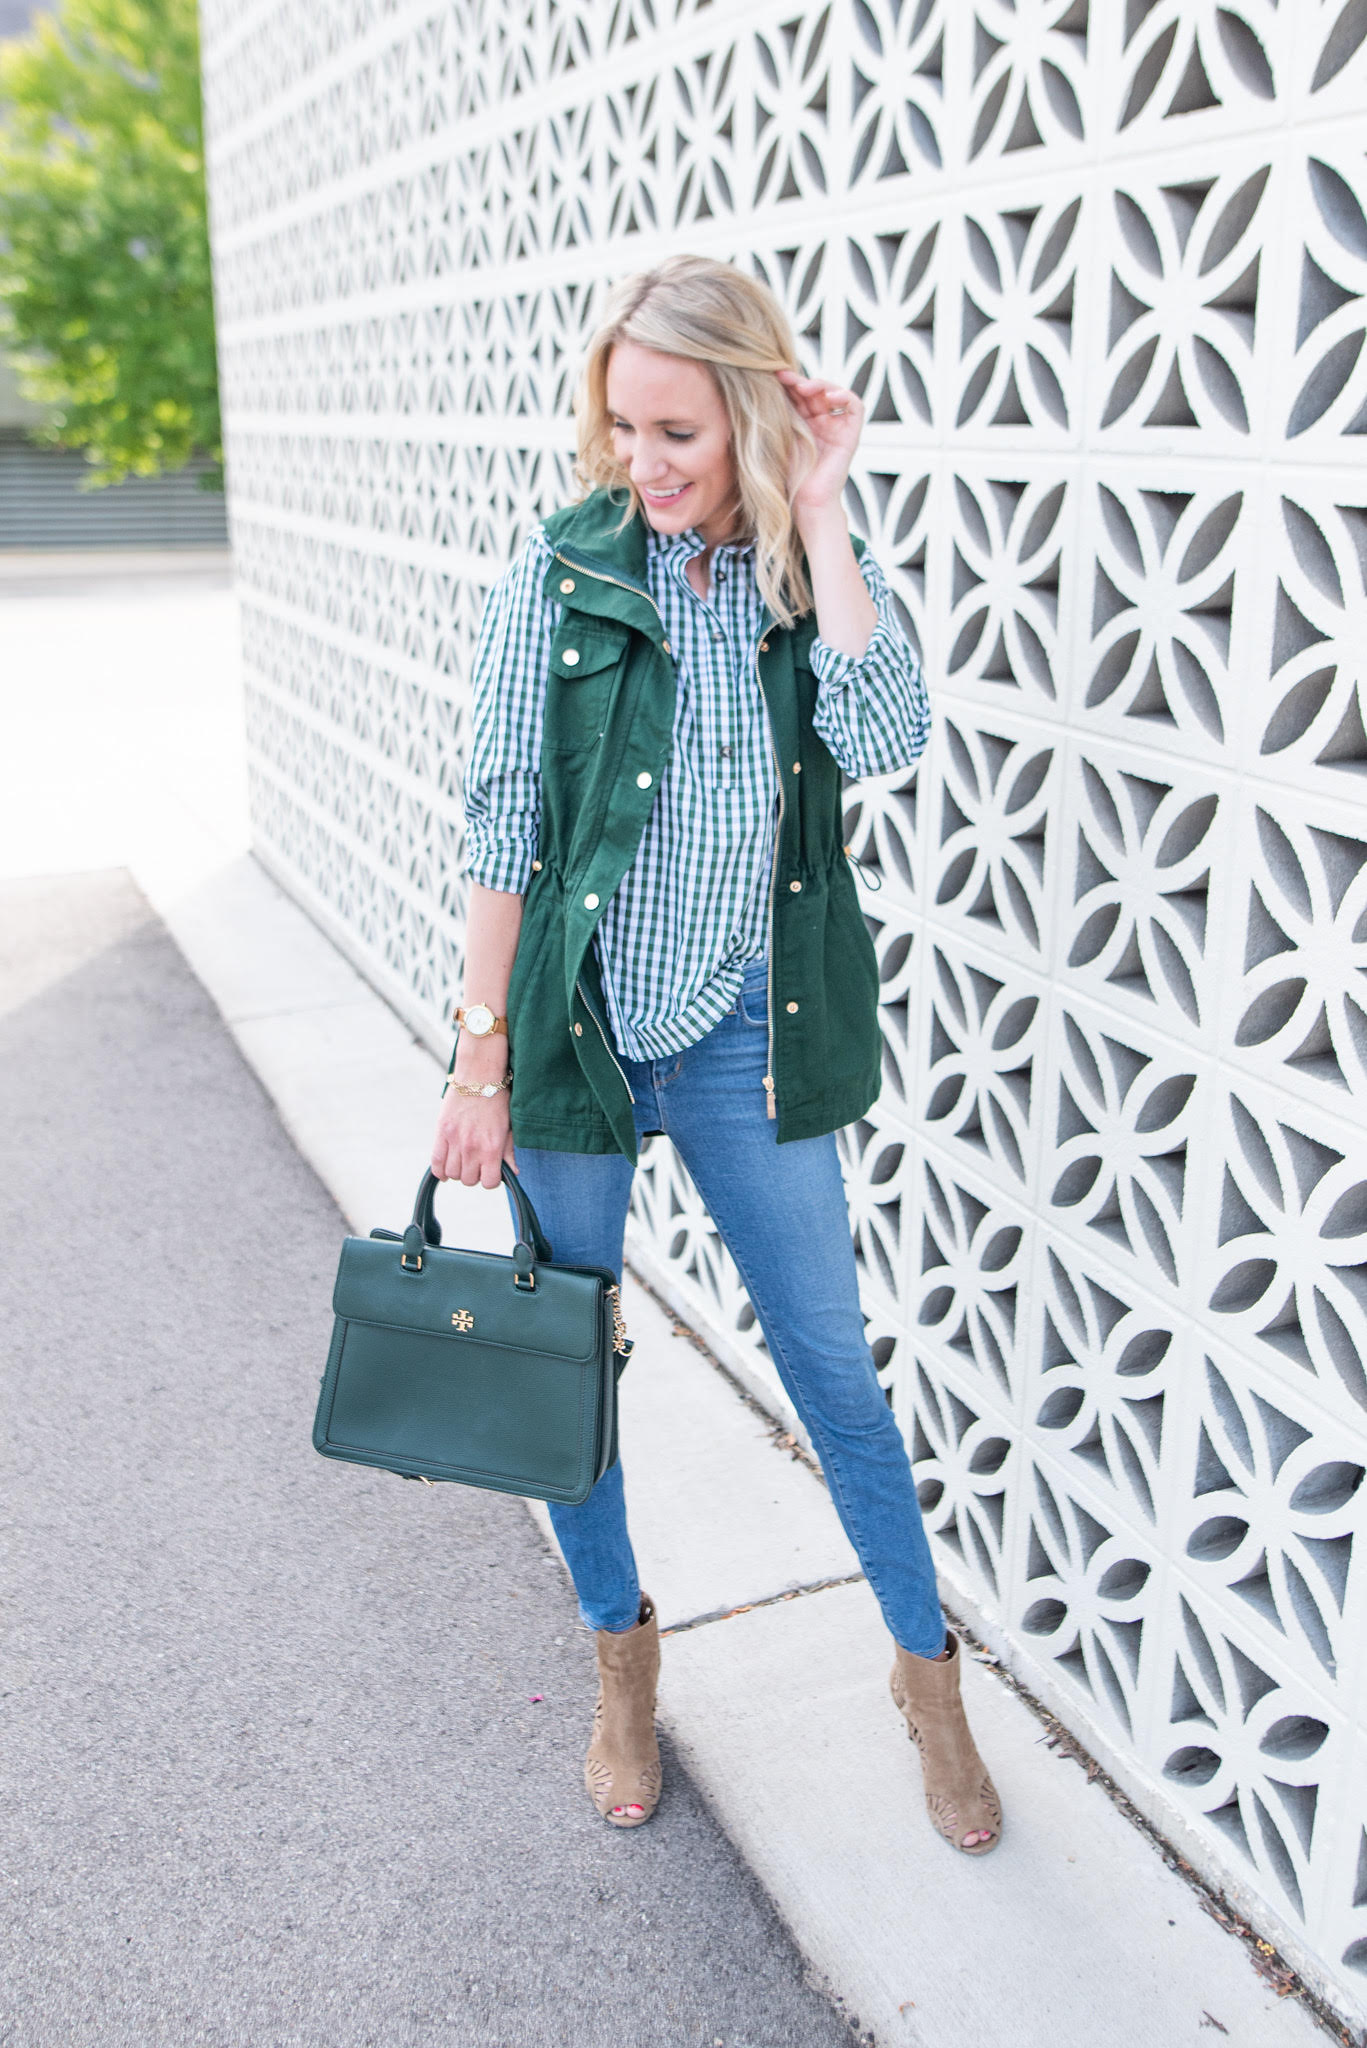 fashionable preppy mom in hunter green outfit |Fall Clothing by popular Michigan fashion blog, The House of Navy: image of a woman wearing the Duffield Lane Sumner Vest with a pair of light wash jeans, peep toe ankle boots, and plaid button down shirt.